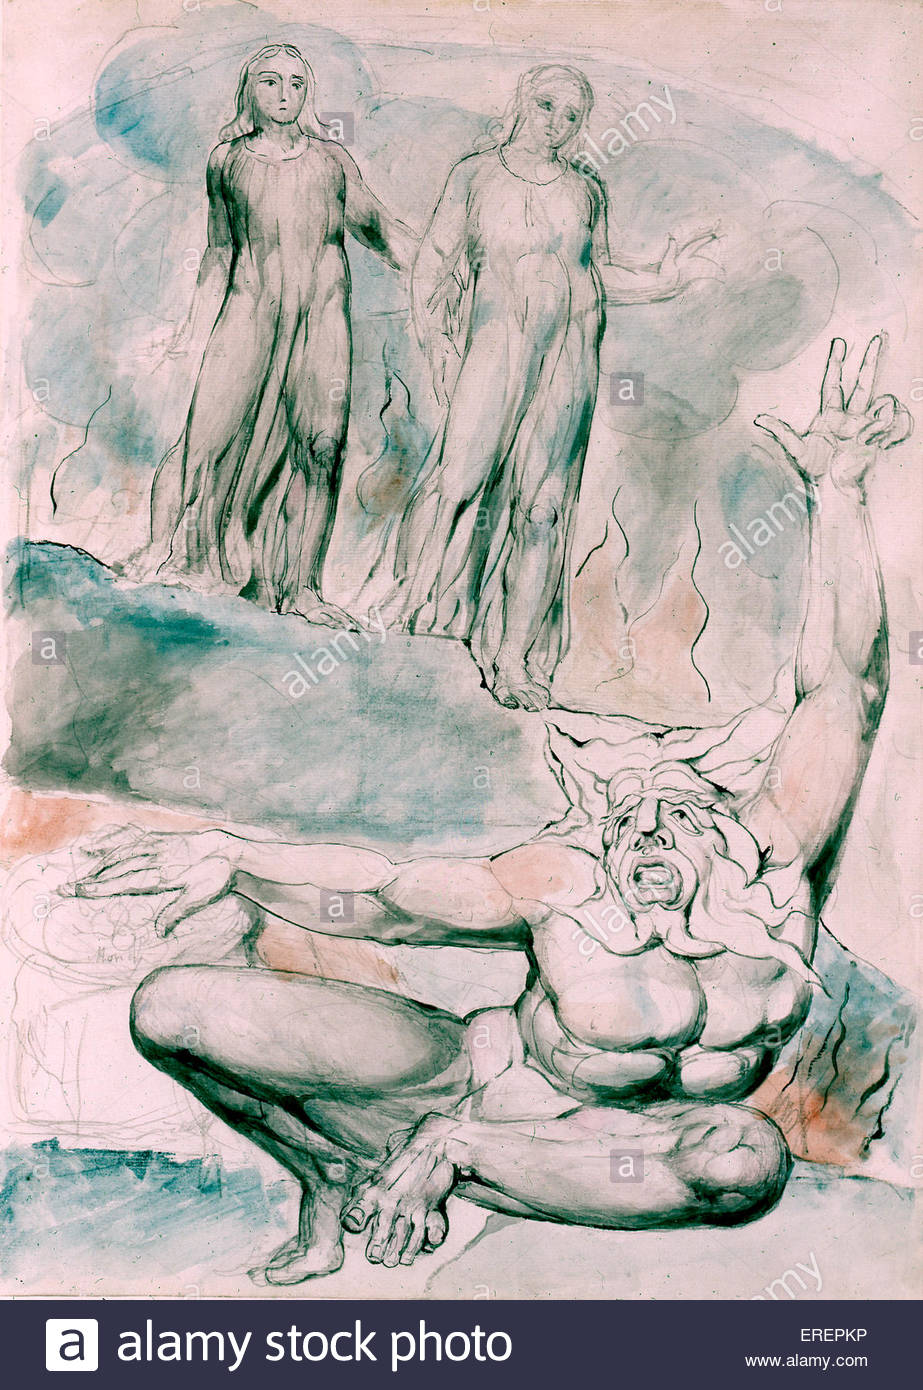 Plutus  by William Blake, 1824- 27. From 'Illustrations to Dante's Divine Comedy'. Scene from Inferno. - Stock Image